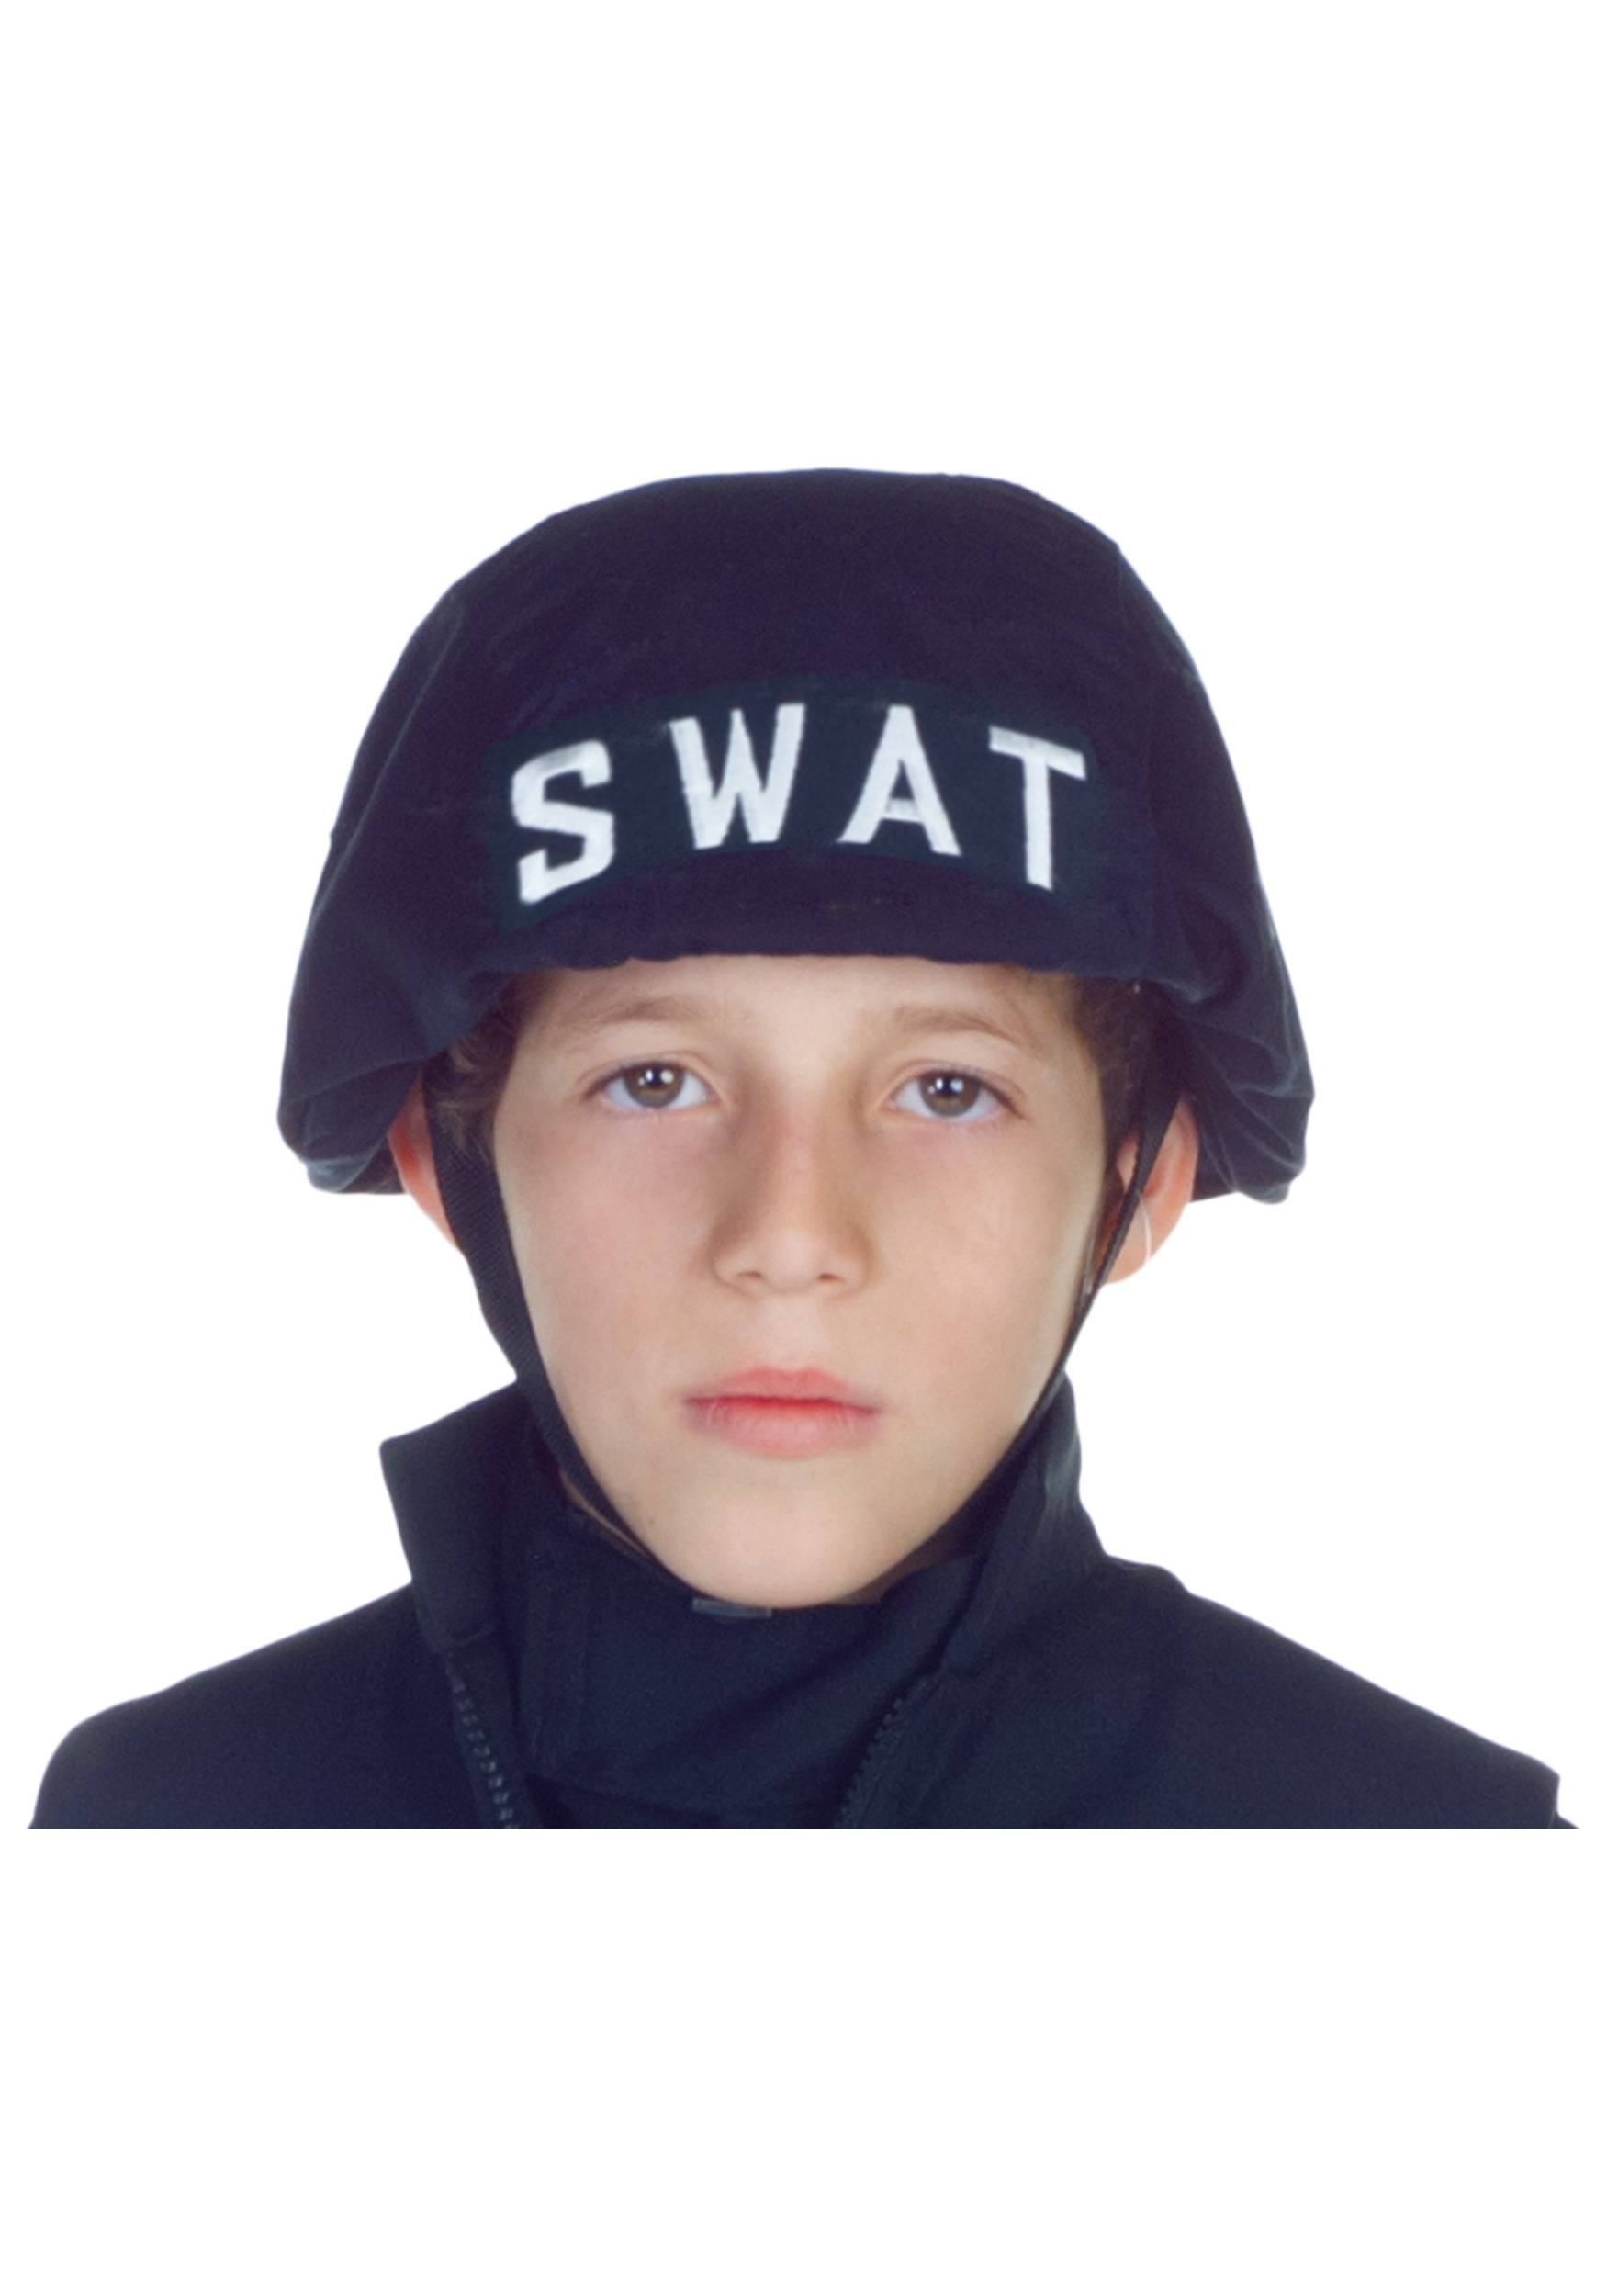 Boys SWAT Helmet  sc 1 st  Halloween Costume : kids swat costume  - Germanpascual.Com